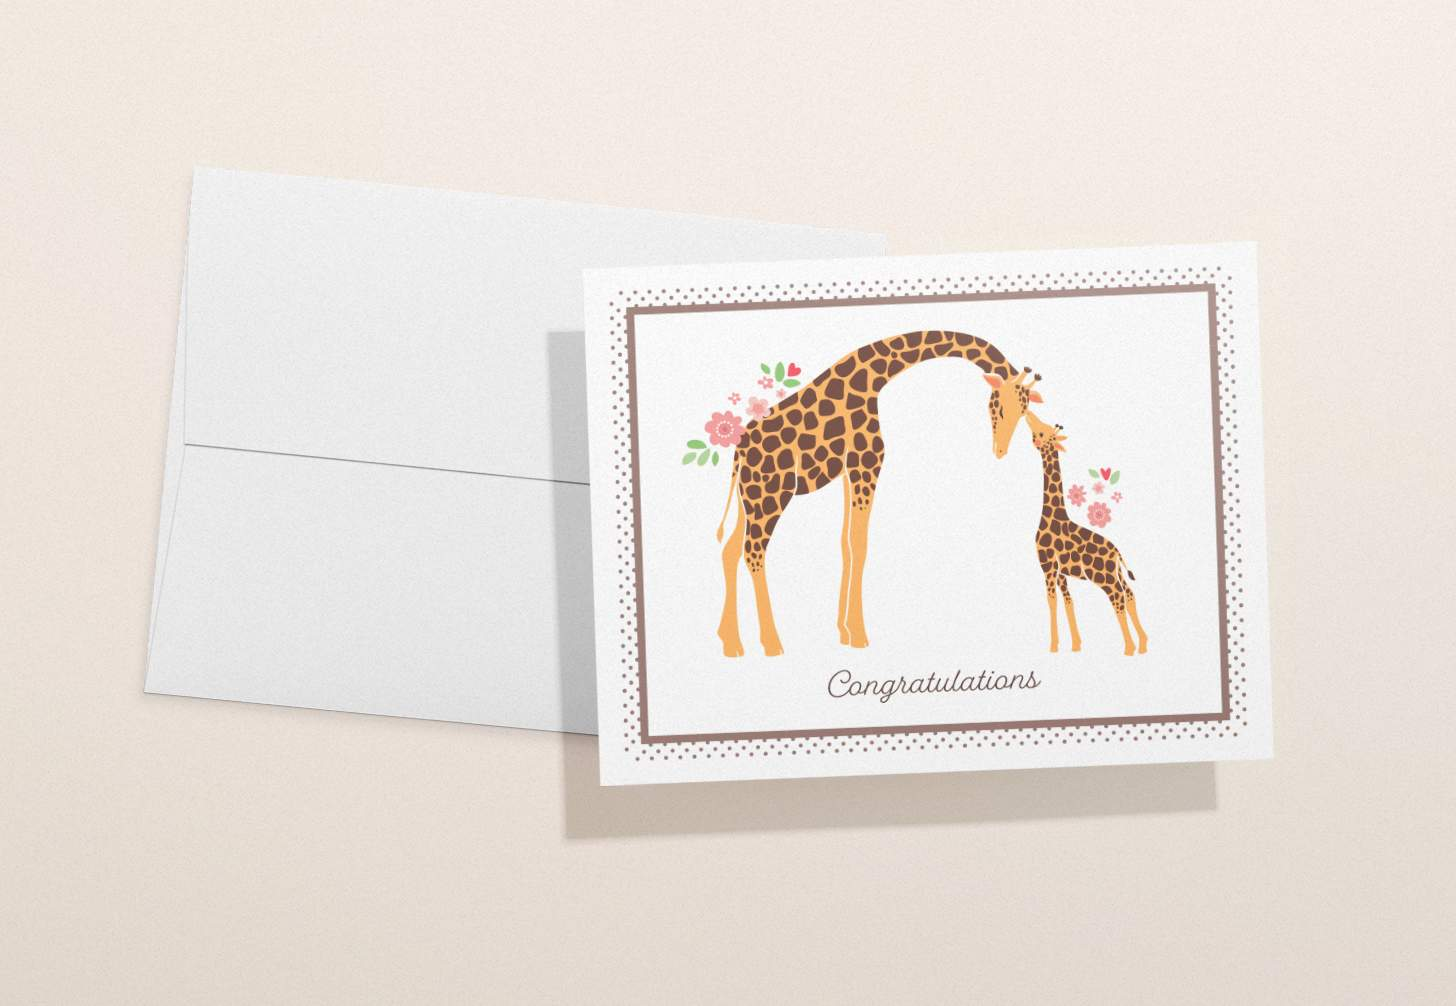 Mother and baby giraffe design with a white envelope